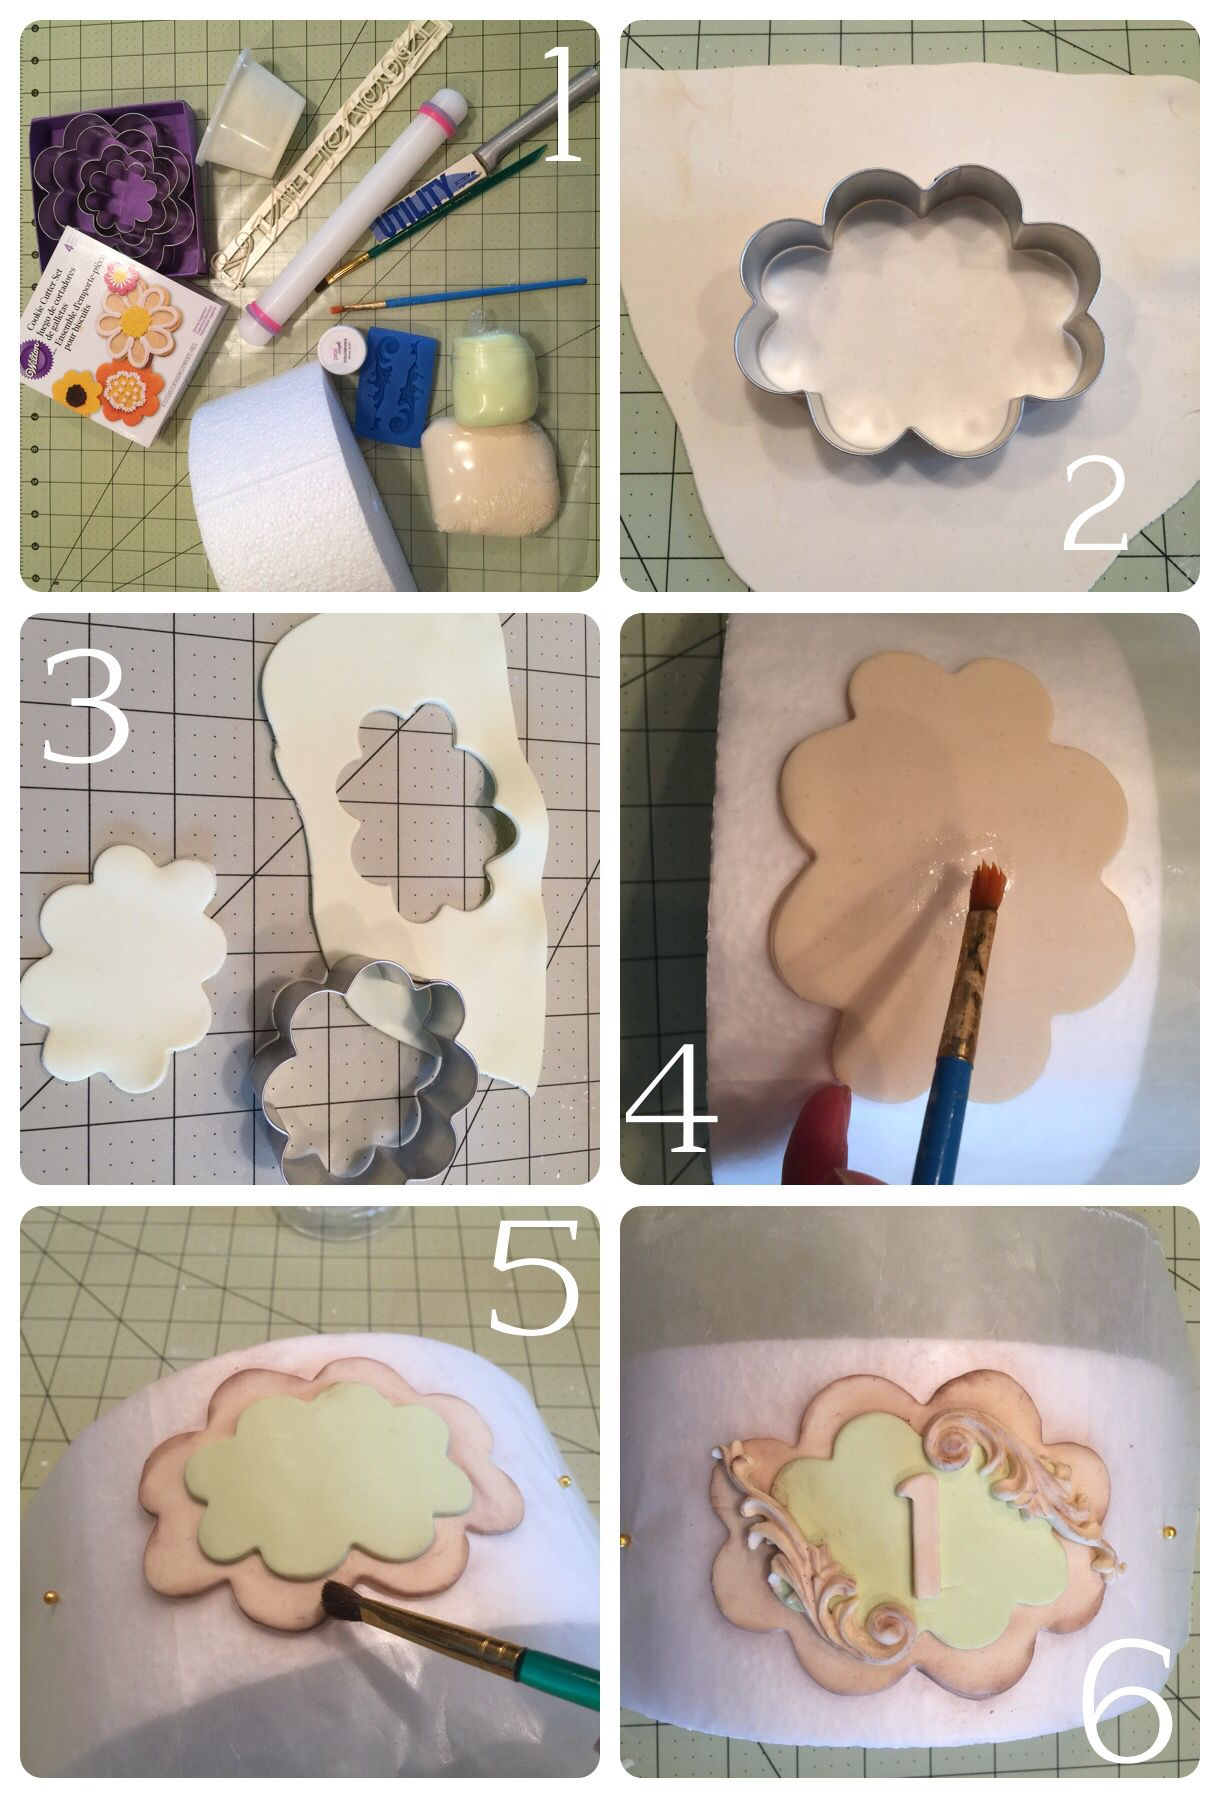 How to make a vintage plaque from fondant or modeling chocolate